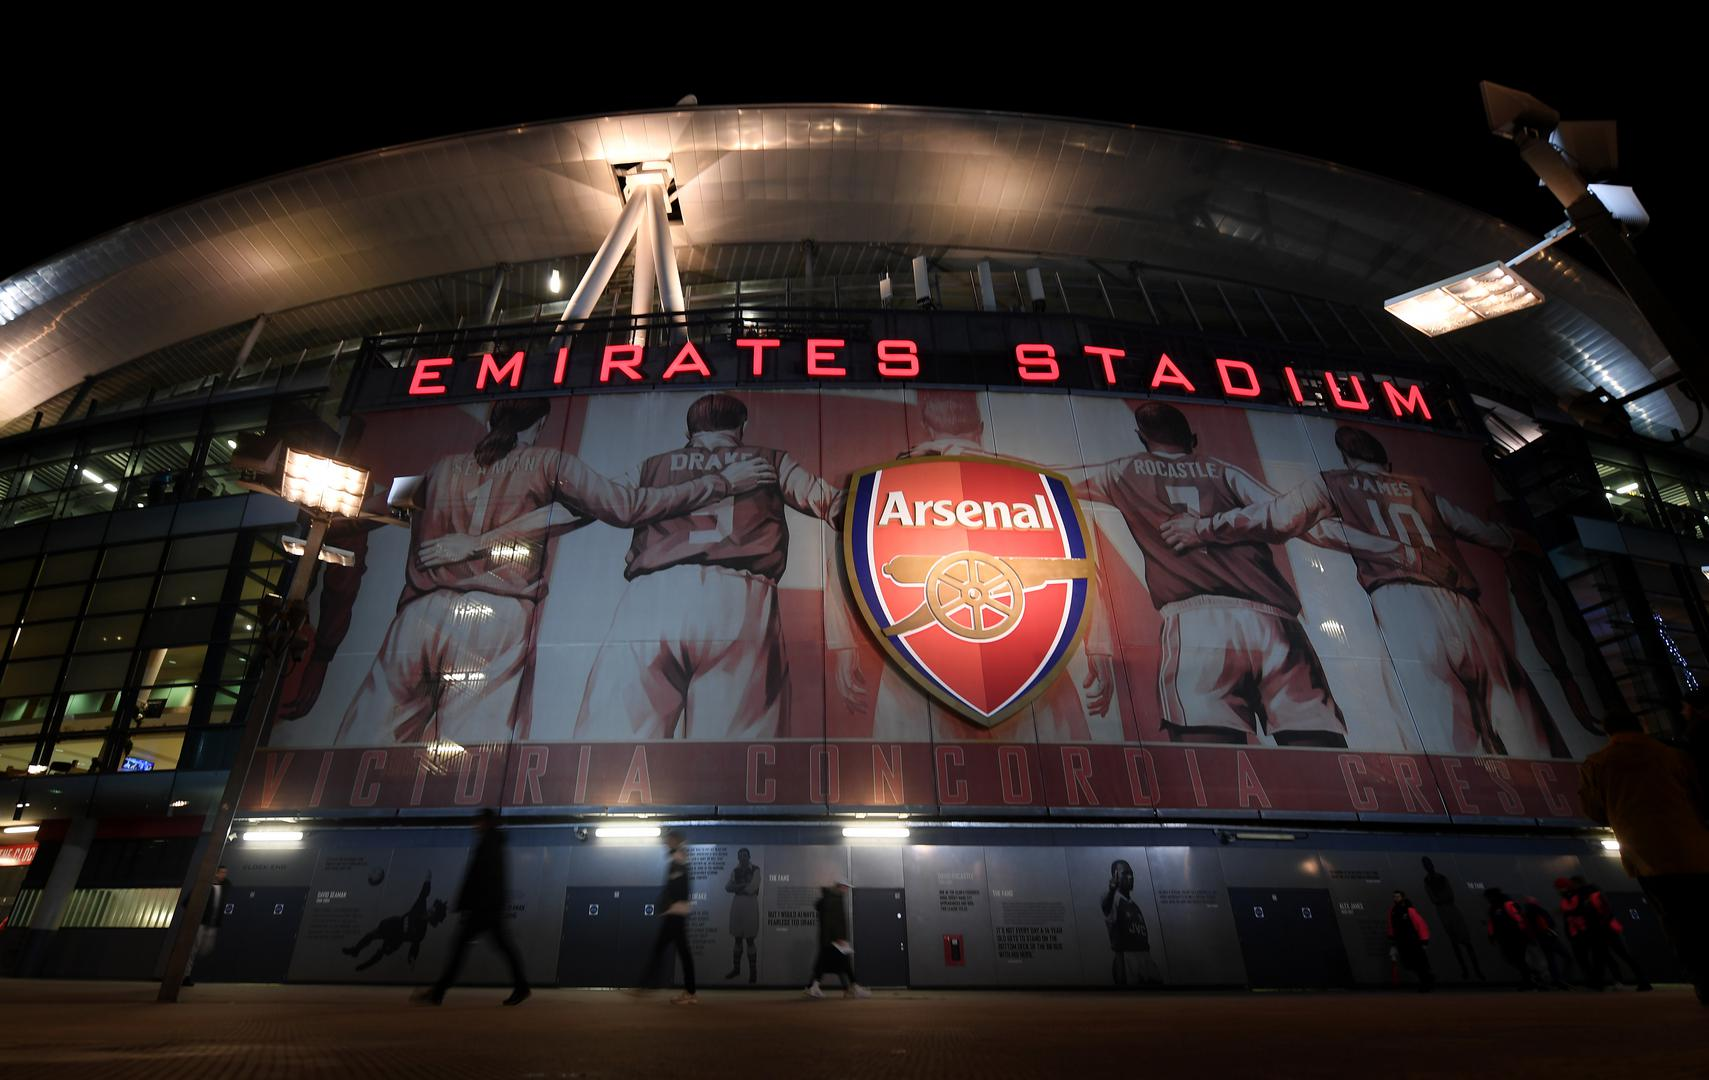 General view outside Emirates Stadium.